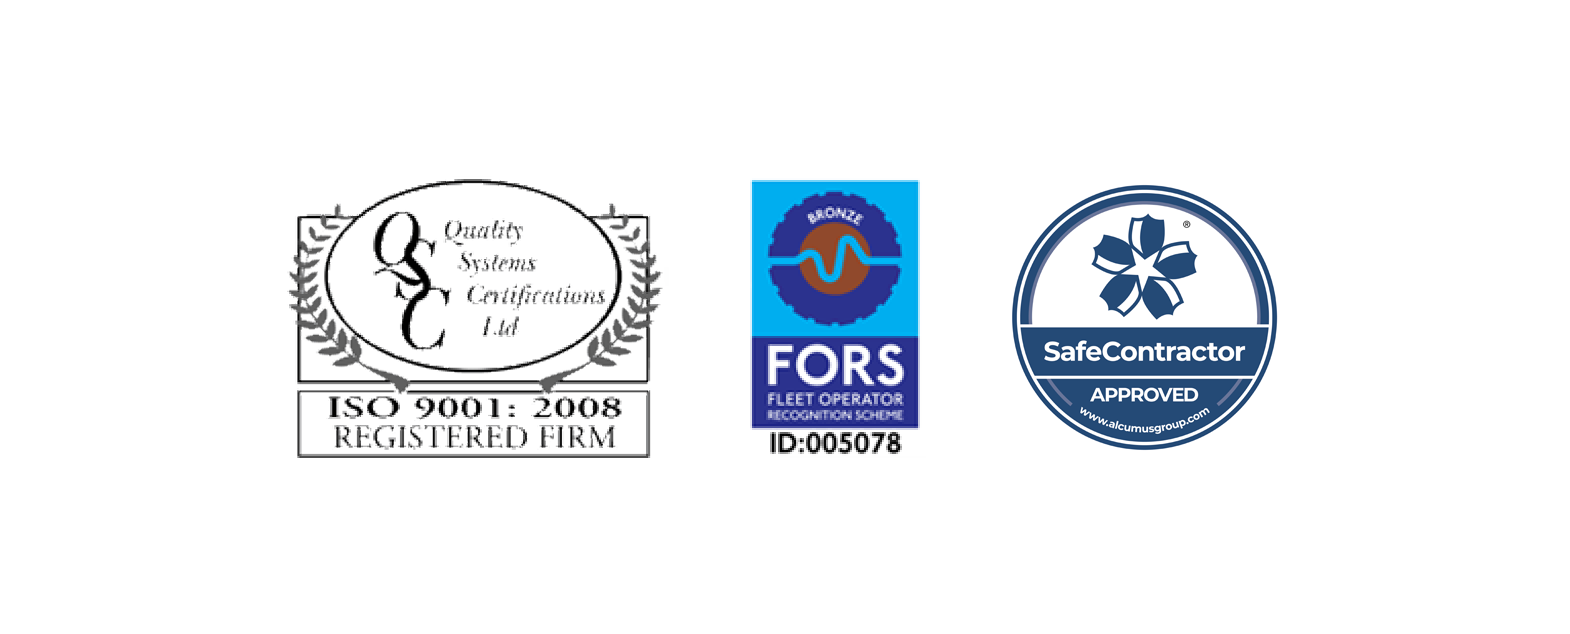 We are members of ENSE, CESA, FSB, Safe Contractor, FORS & we have recently been awarded ISO9001 Certification